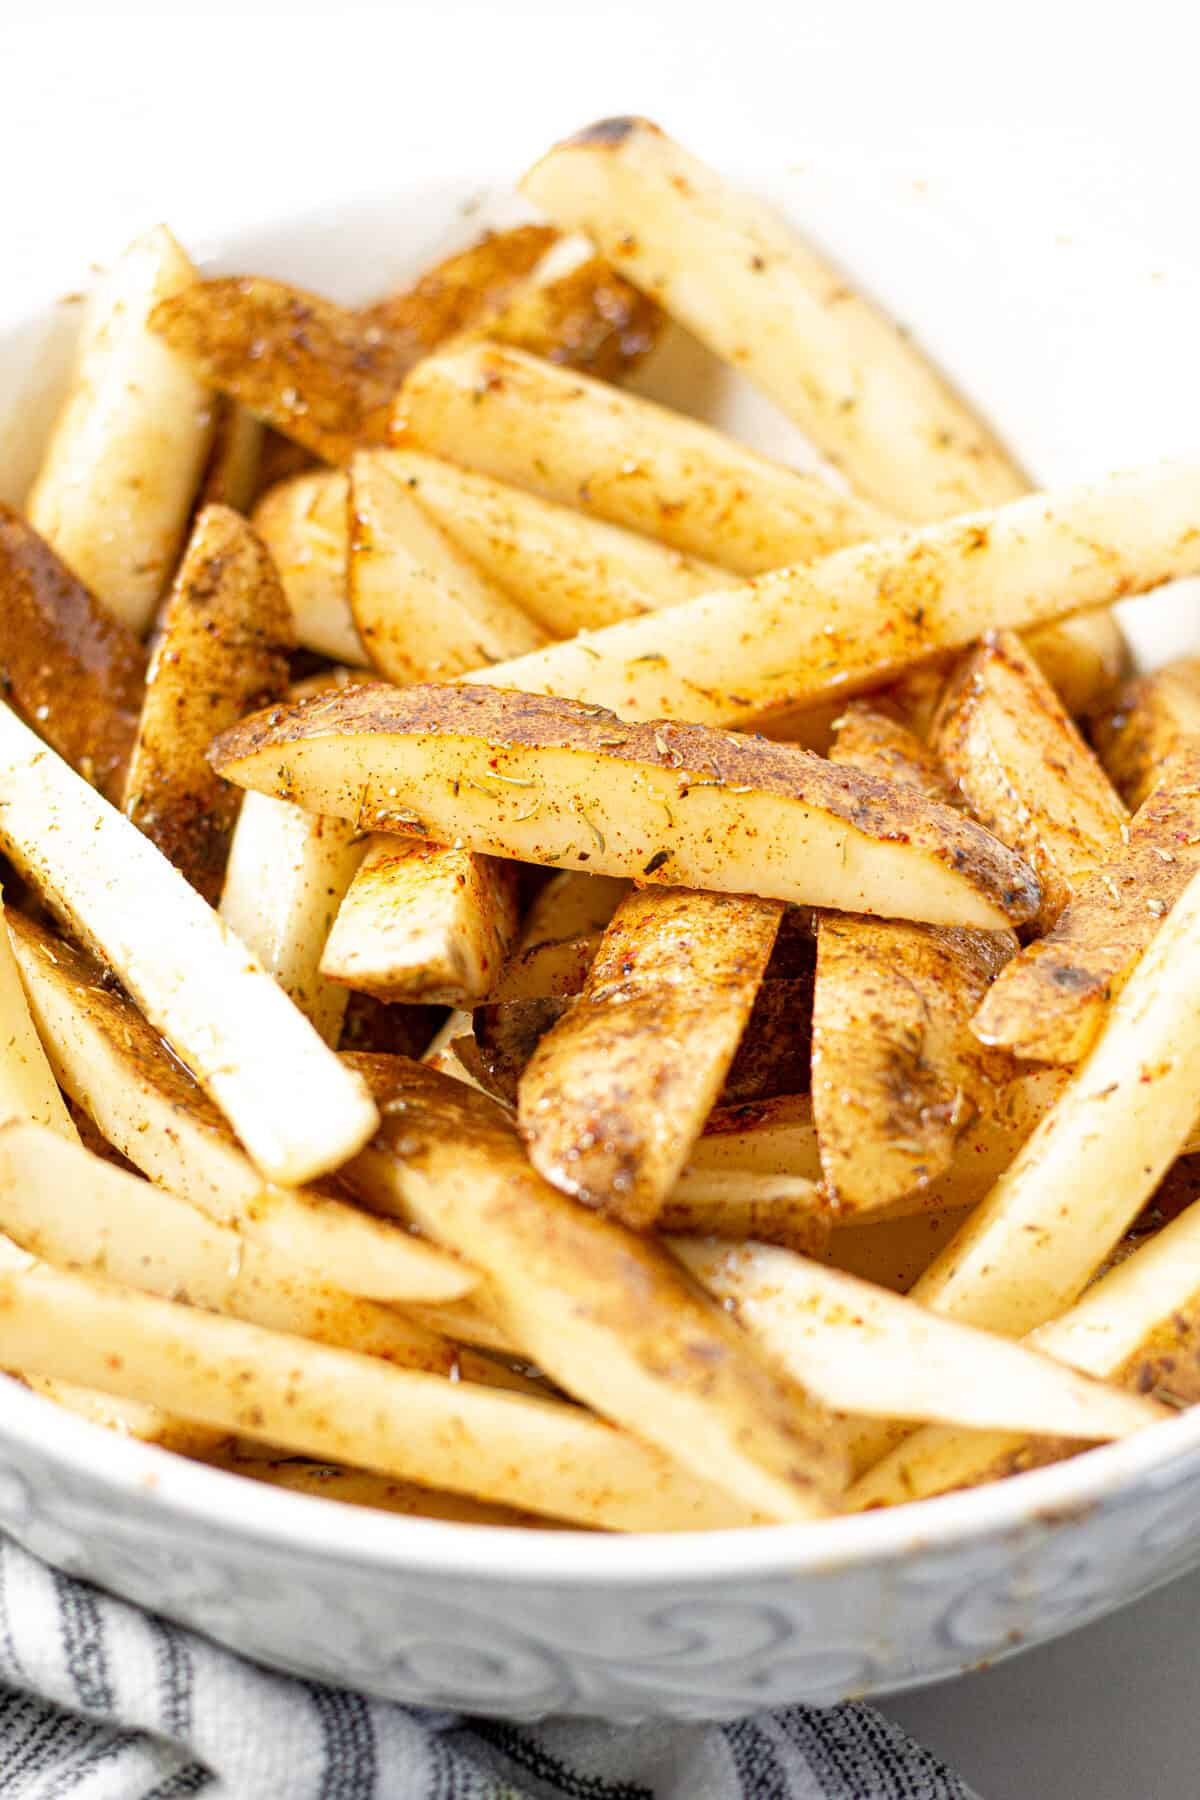 White bowl filled with fresh cut French fries tossed with seasonings